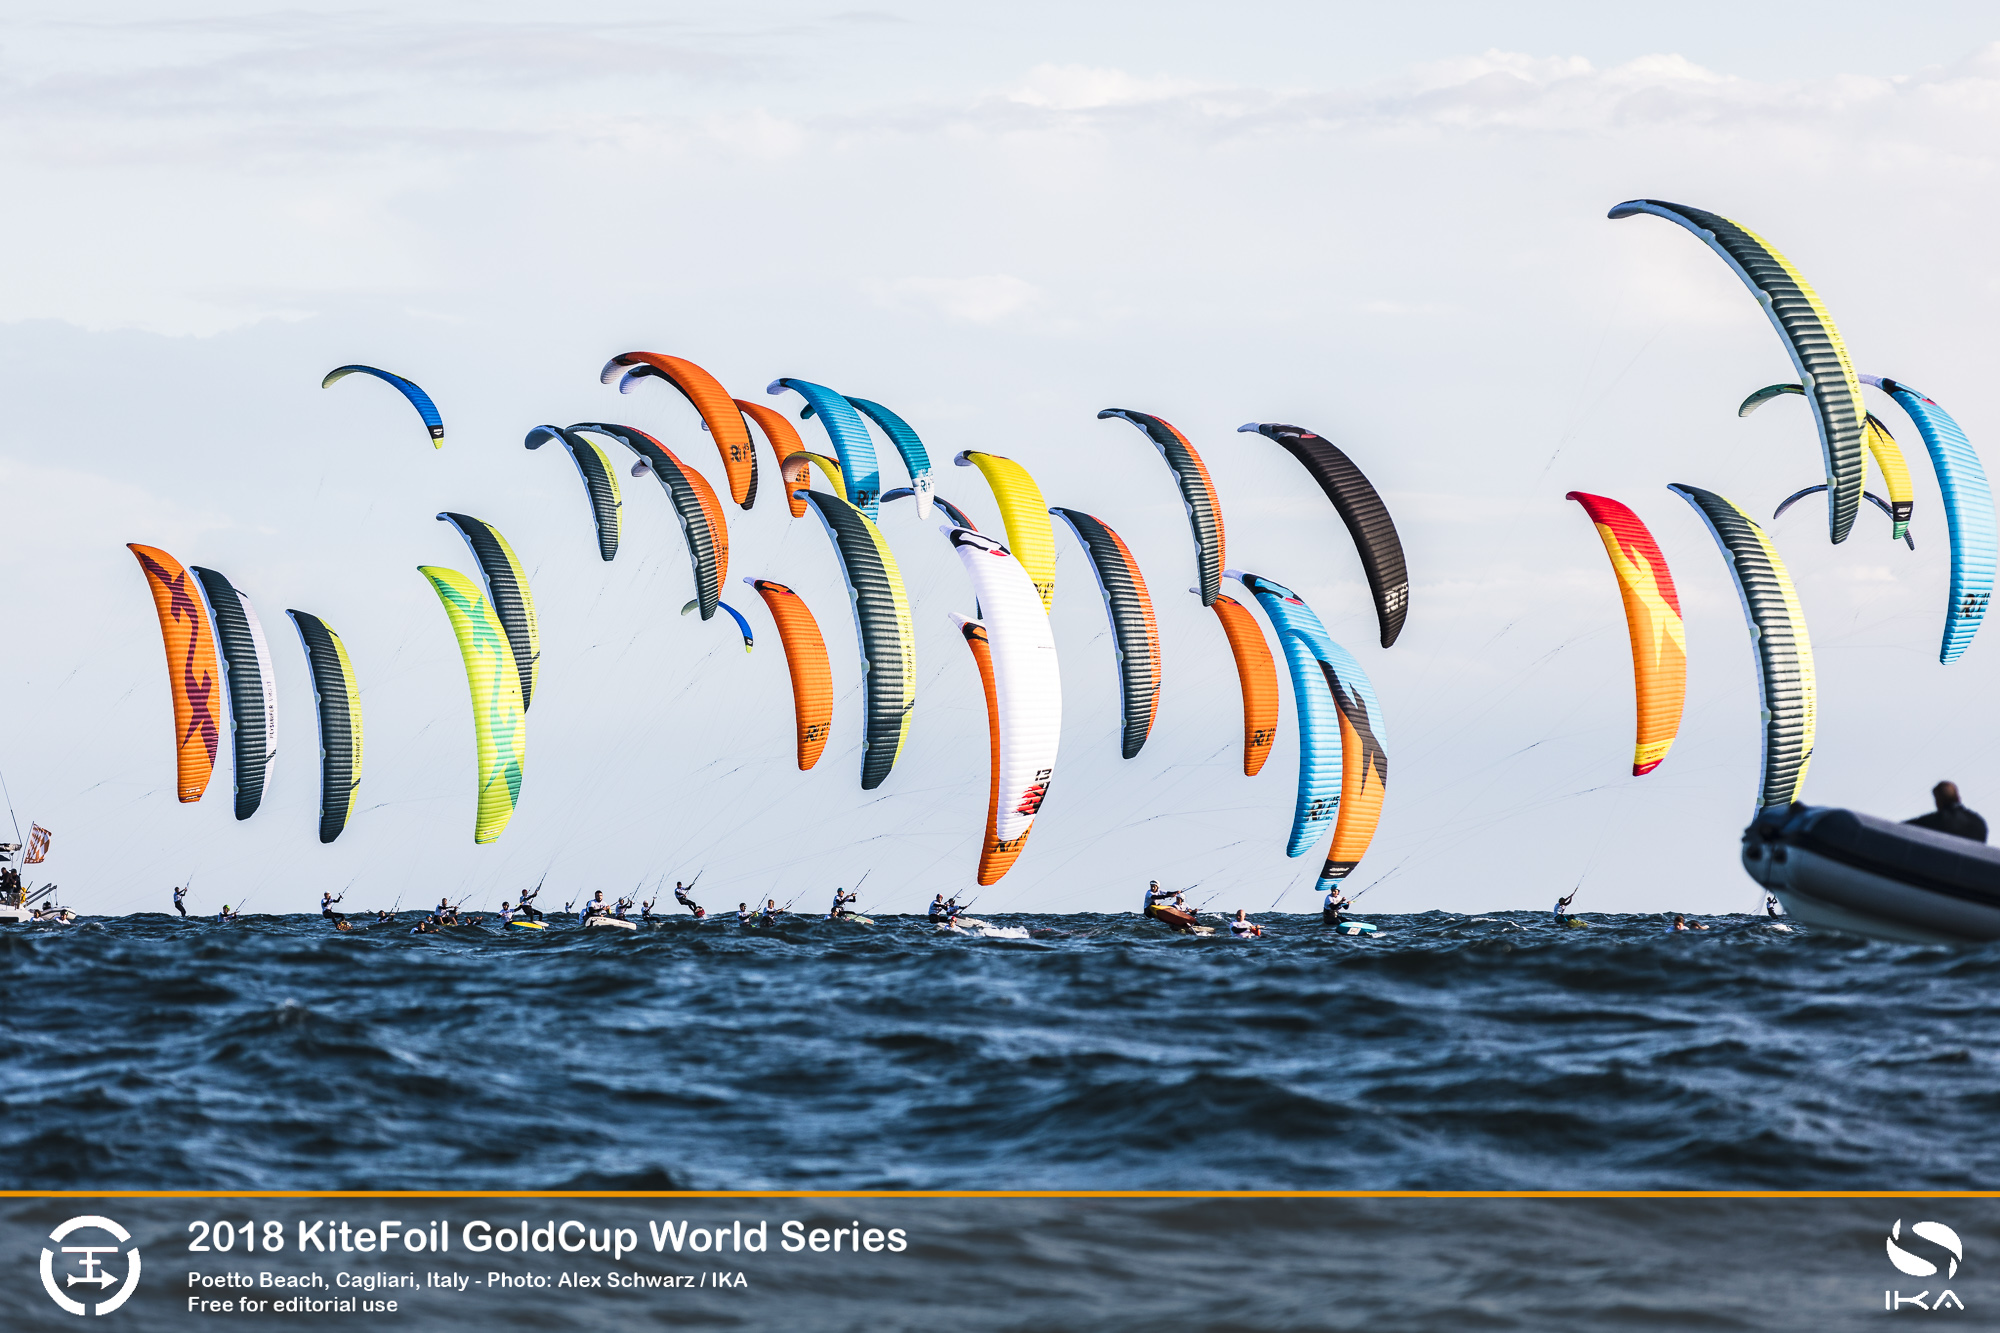 6bec1d83 9dd4 497c b633 2231aa961aa0 - Tricky Conditions for the Opening of the Sardinia Grand Slam